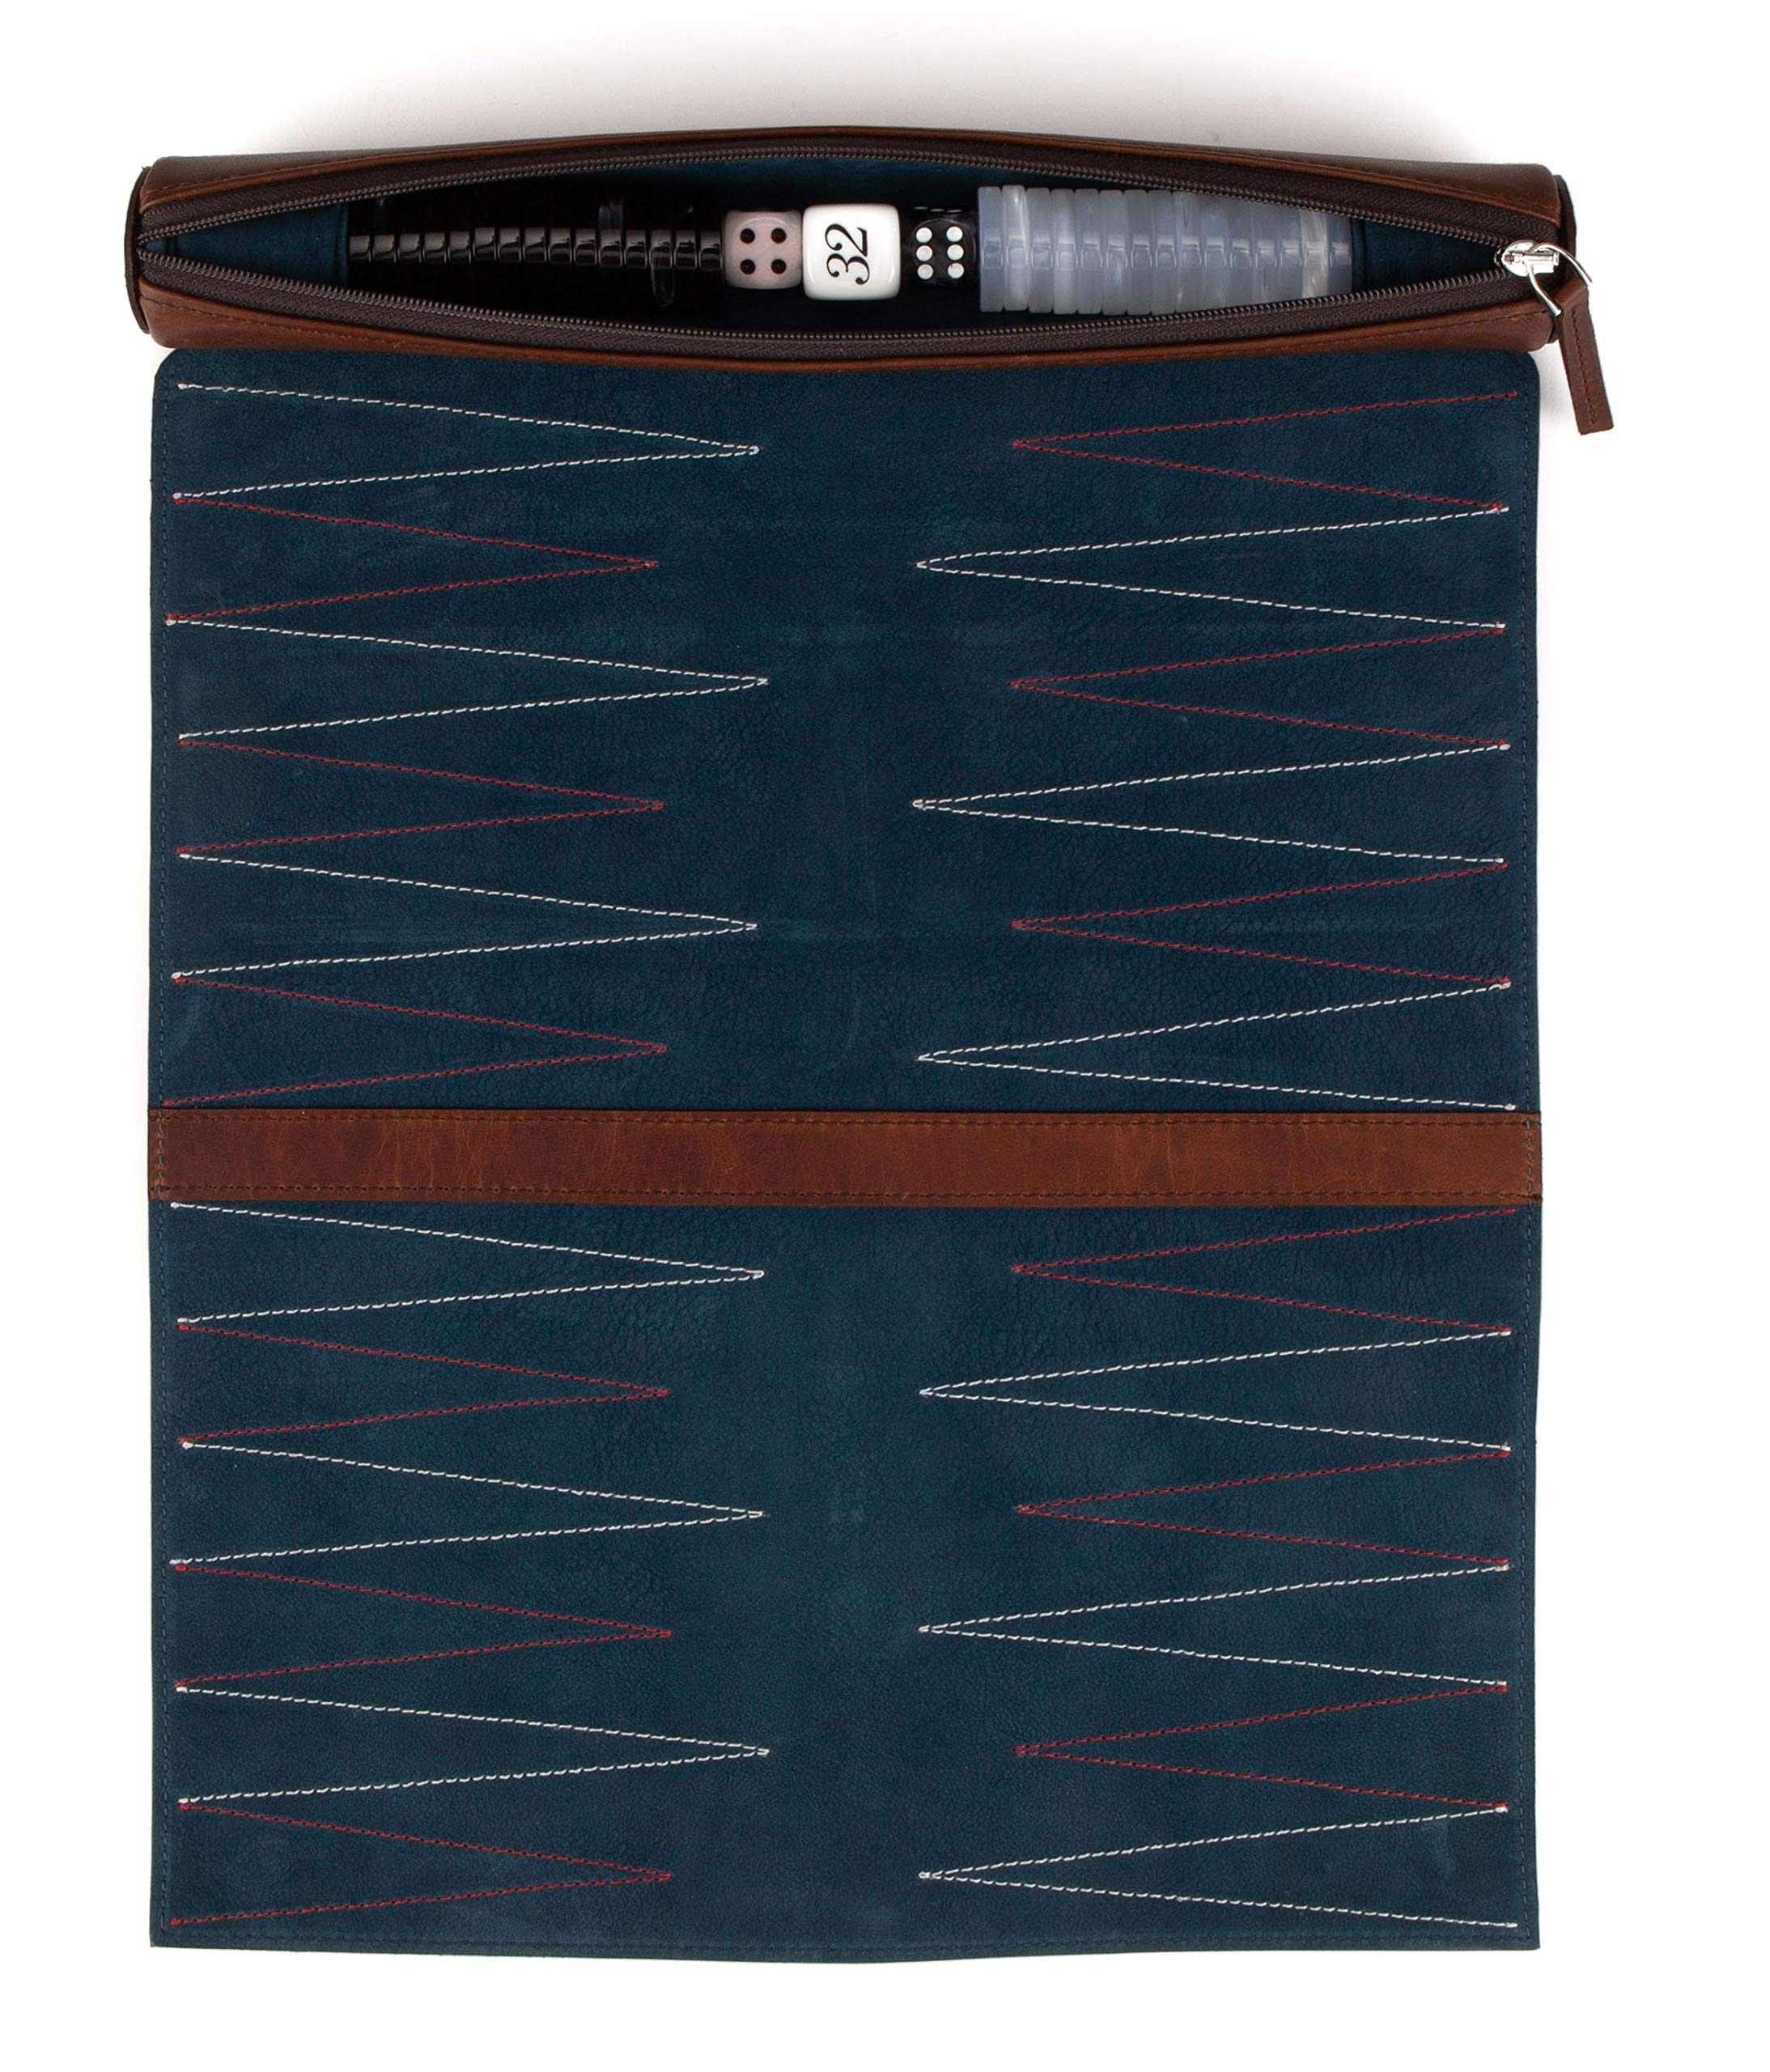 Moore and Giles Luxury Leather Travel Backgammon Set, Baldwin Oak by Moore and Giles (Image #8)